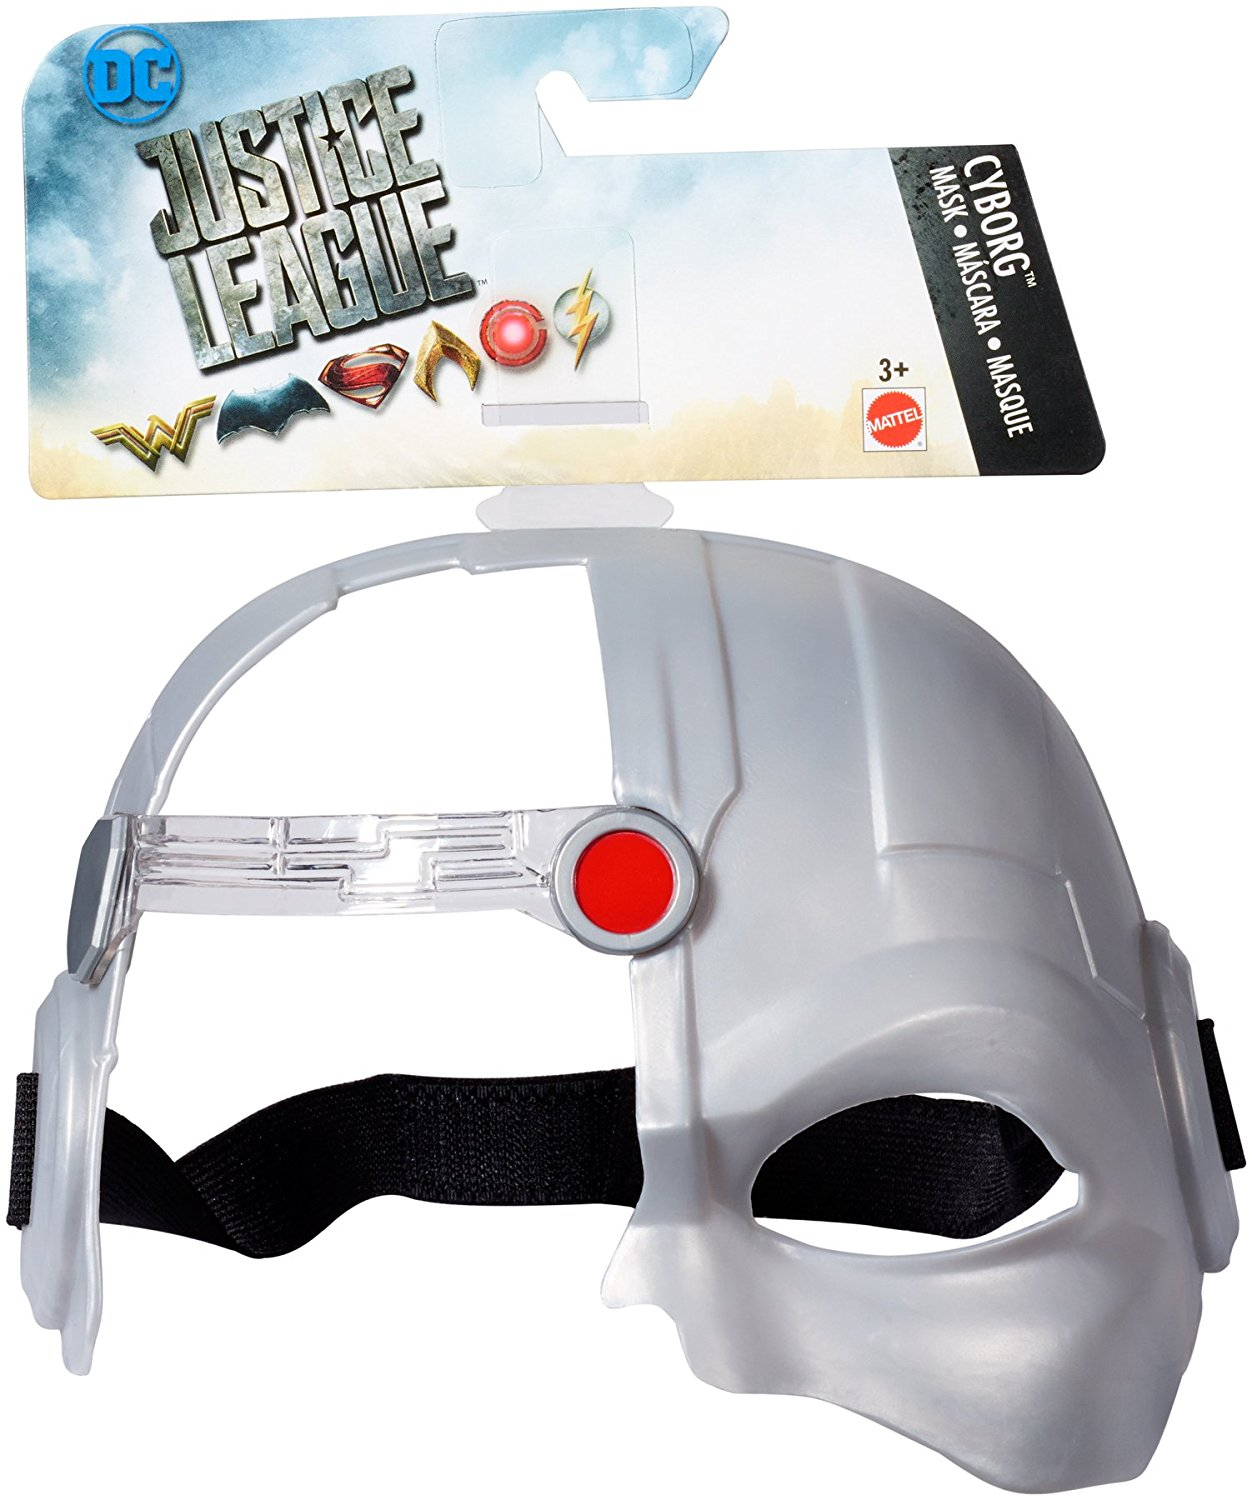 Justice League Movie: Cyborg Mask by Mattel